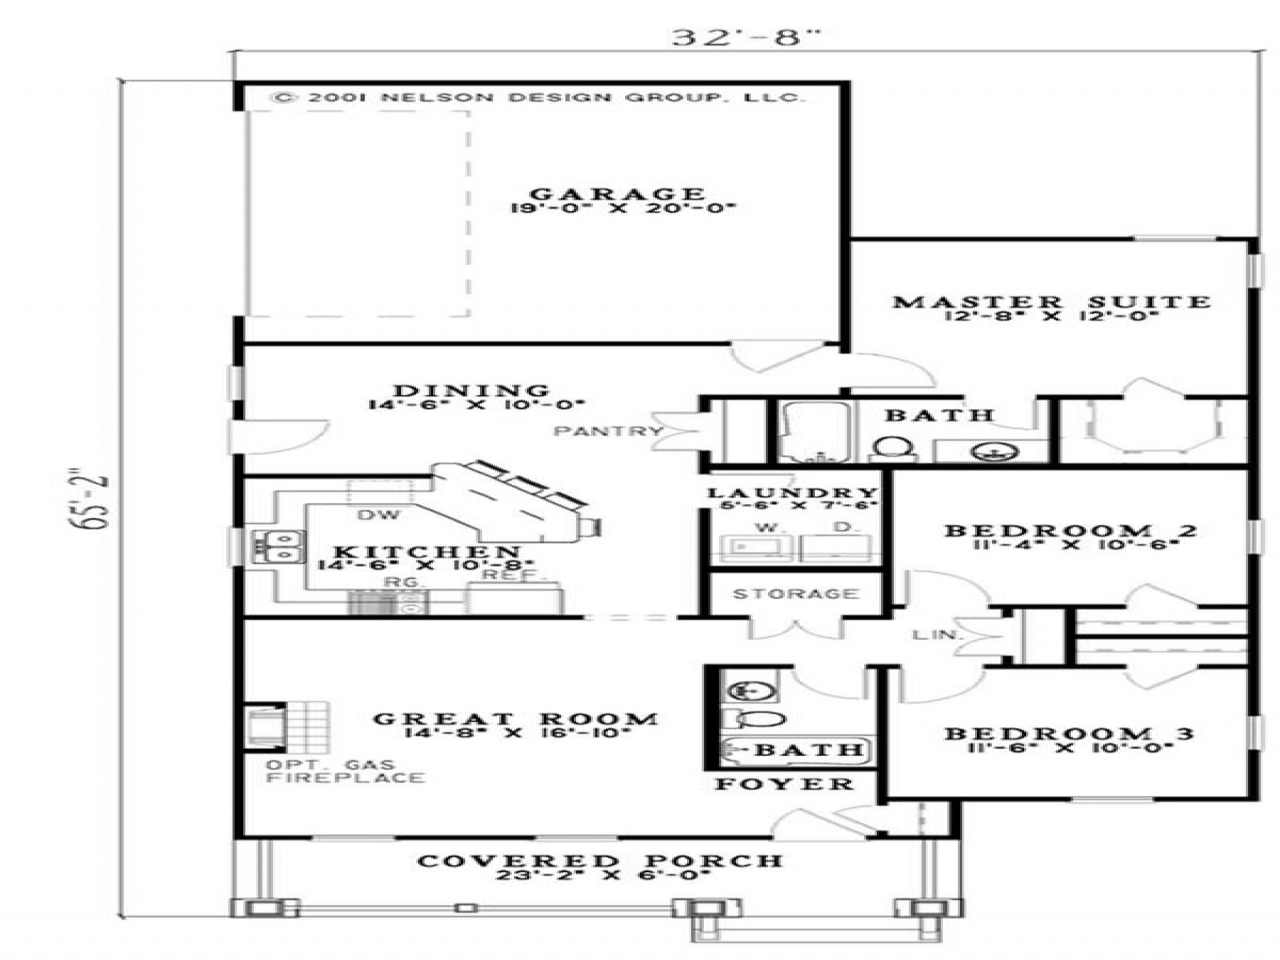 Arts and crafts house plans home design arts and crafts for Arts and crafts house plans